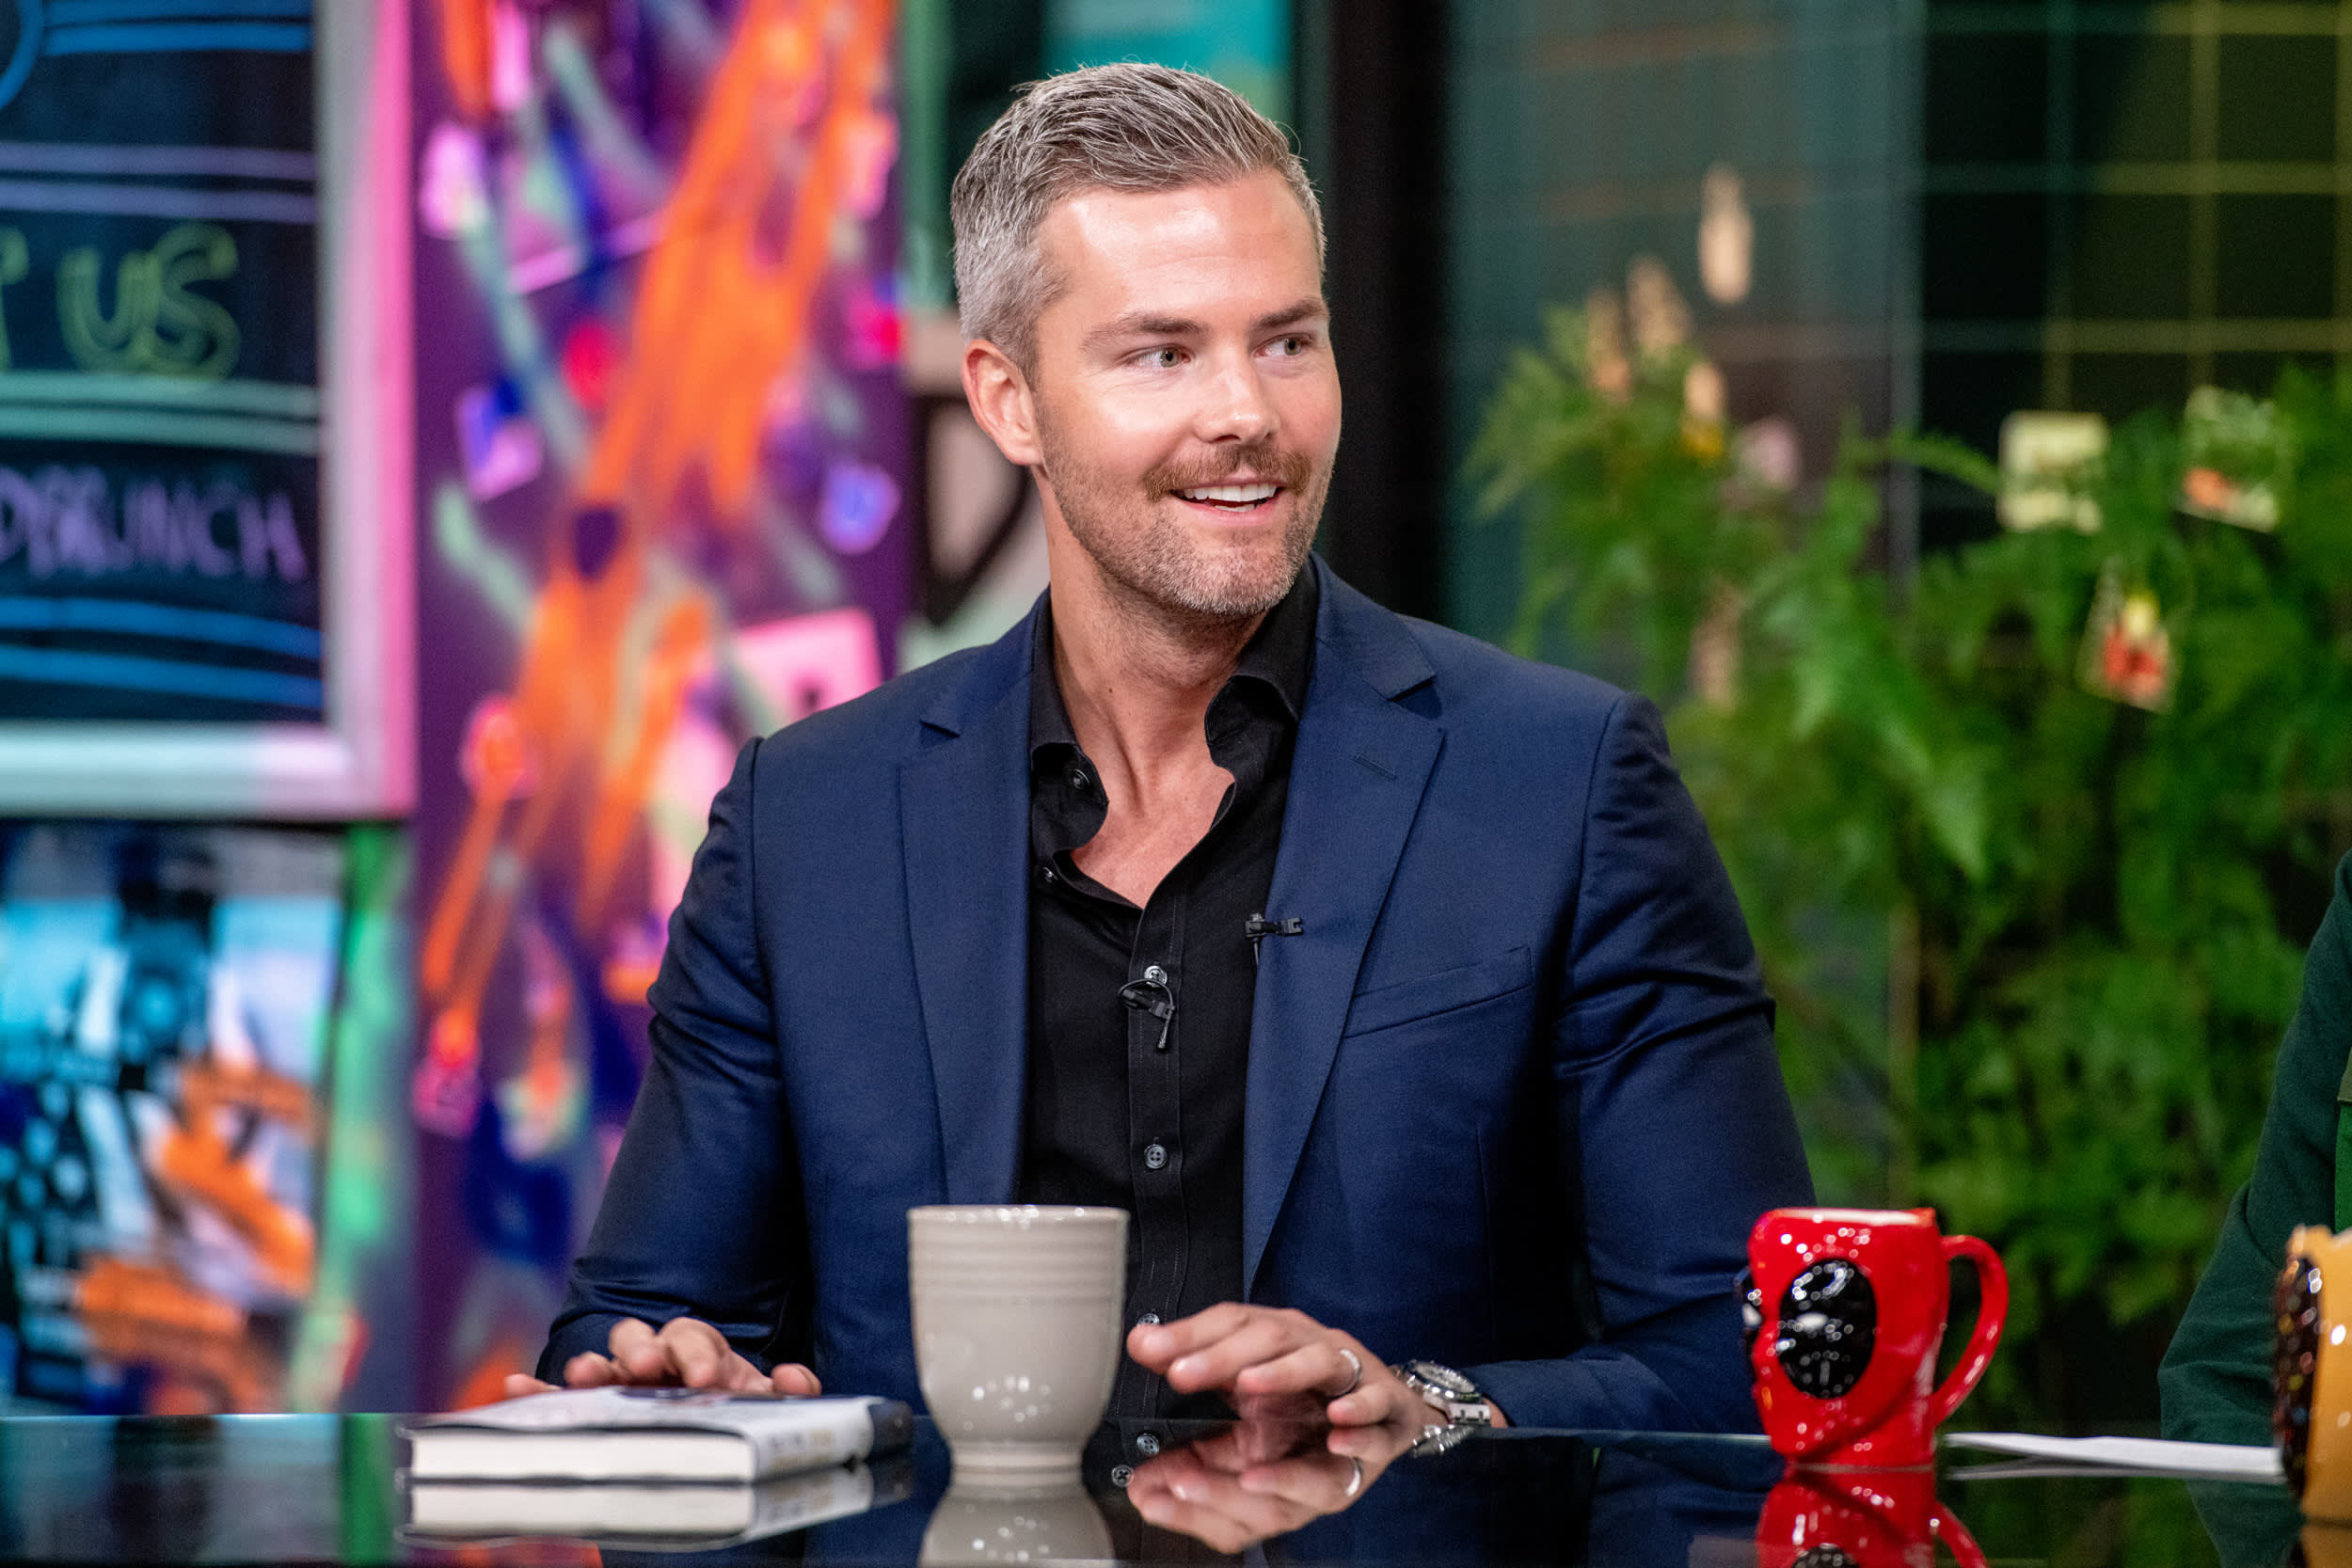 'Million Dollar Listing' star Ryan Serhant: How I learned about money